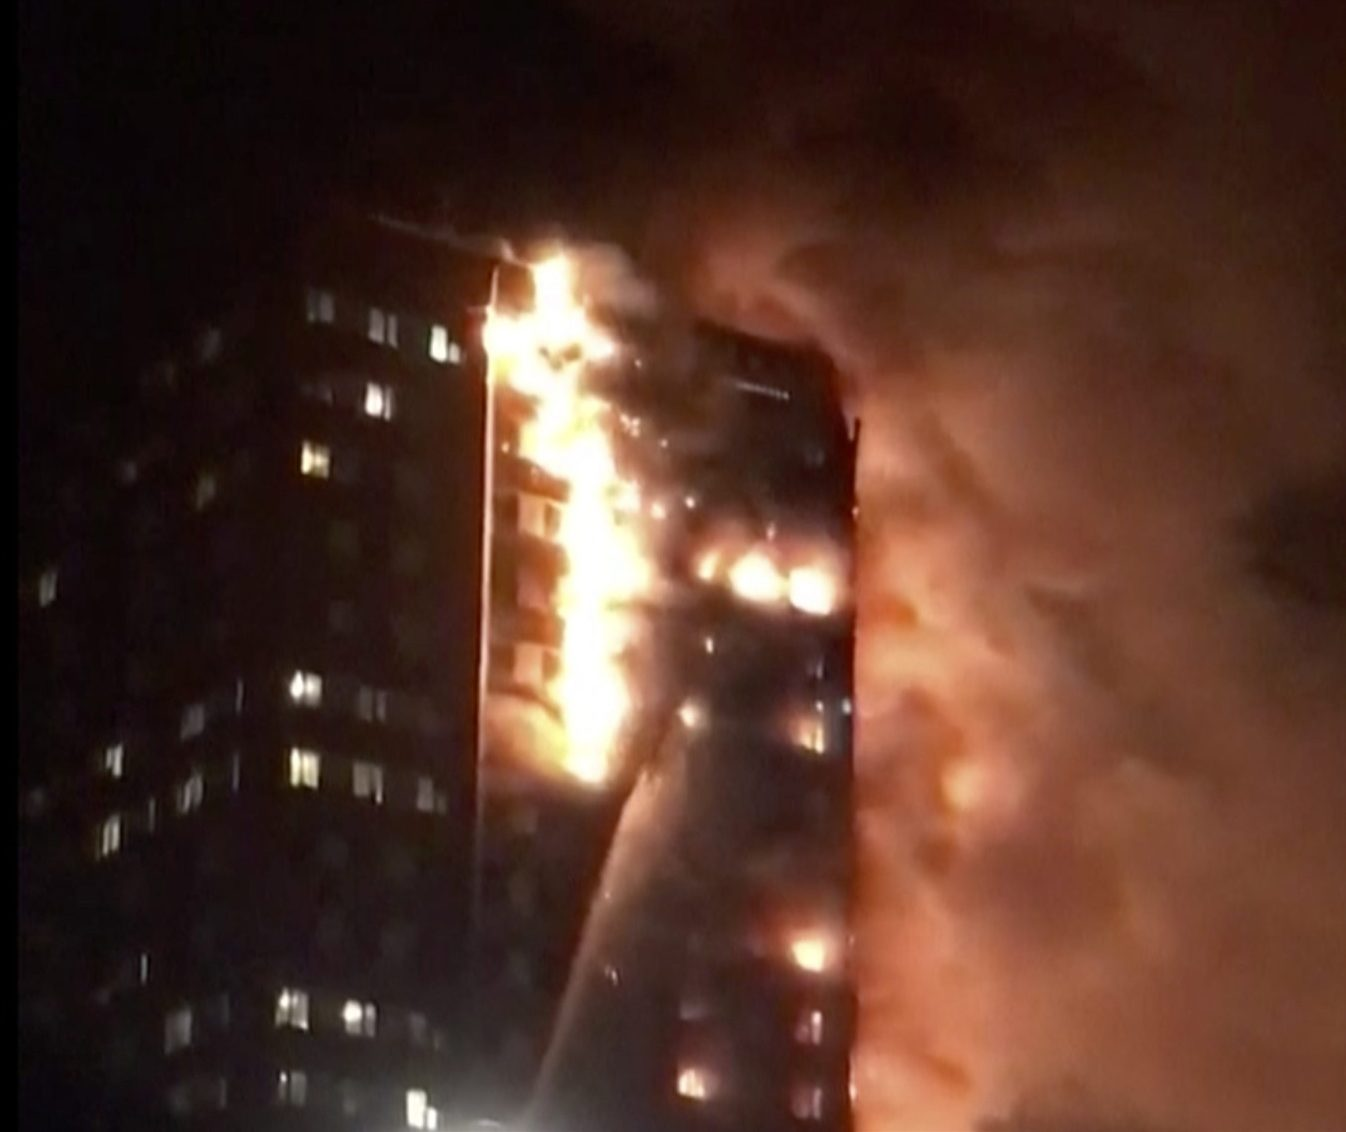 London police launch criminal investigation over fatal apartment blaze